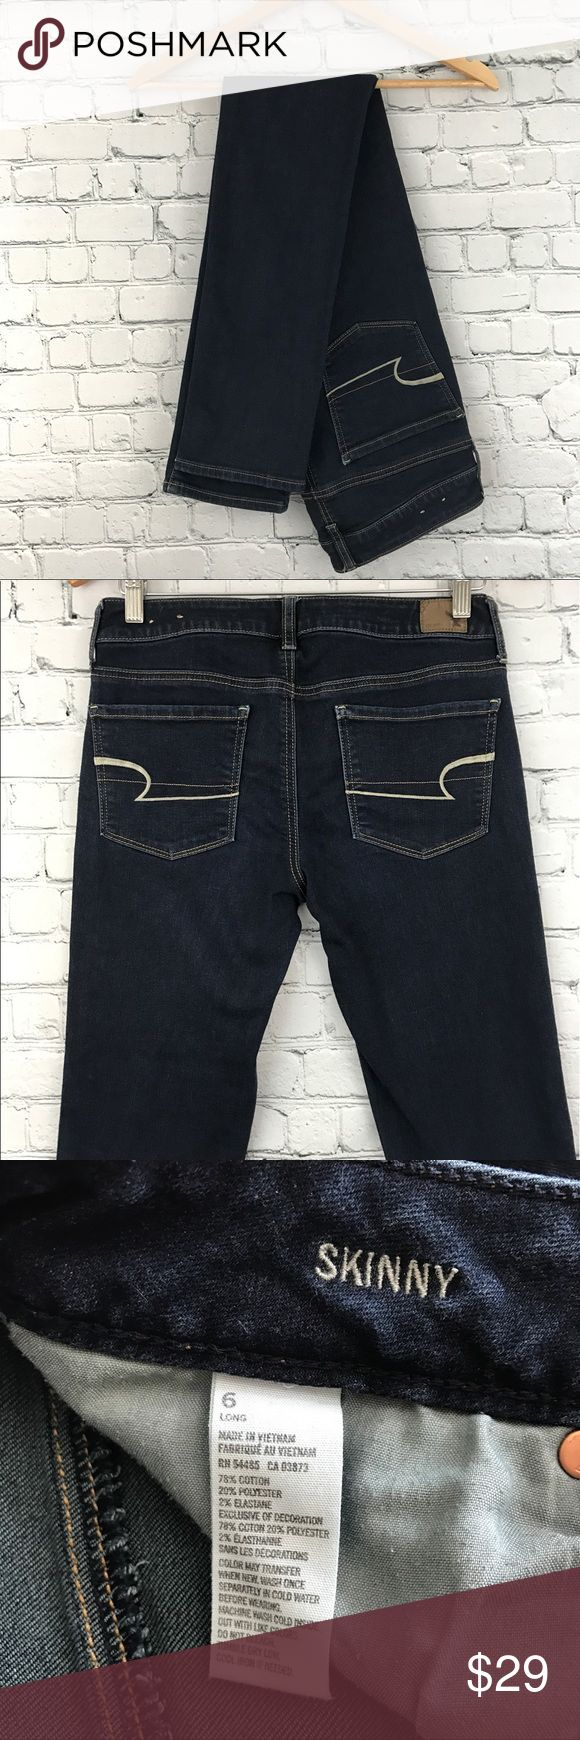 {American Eagle} Dark Wash Skinny Jean 6 Tall Excellent condition! My favorite brand of denim. Size 6 TALL. Some stretch. No trades, modeling, or lowballs please 😘 American Eagle Outfitters Jeans Skinny